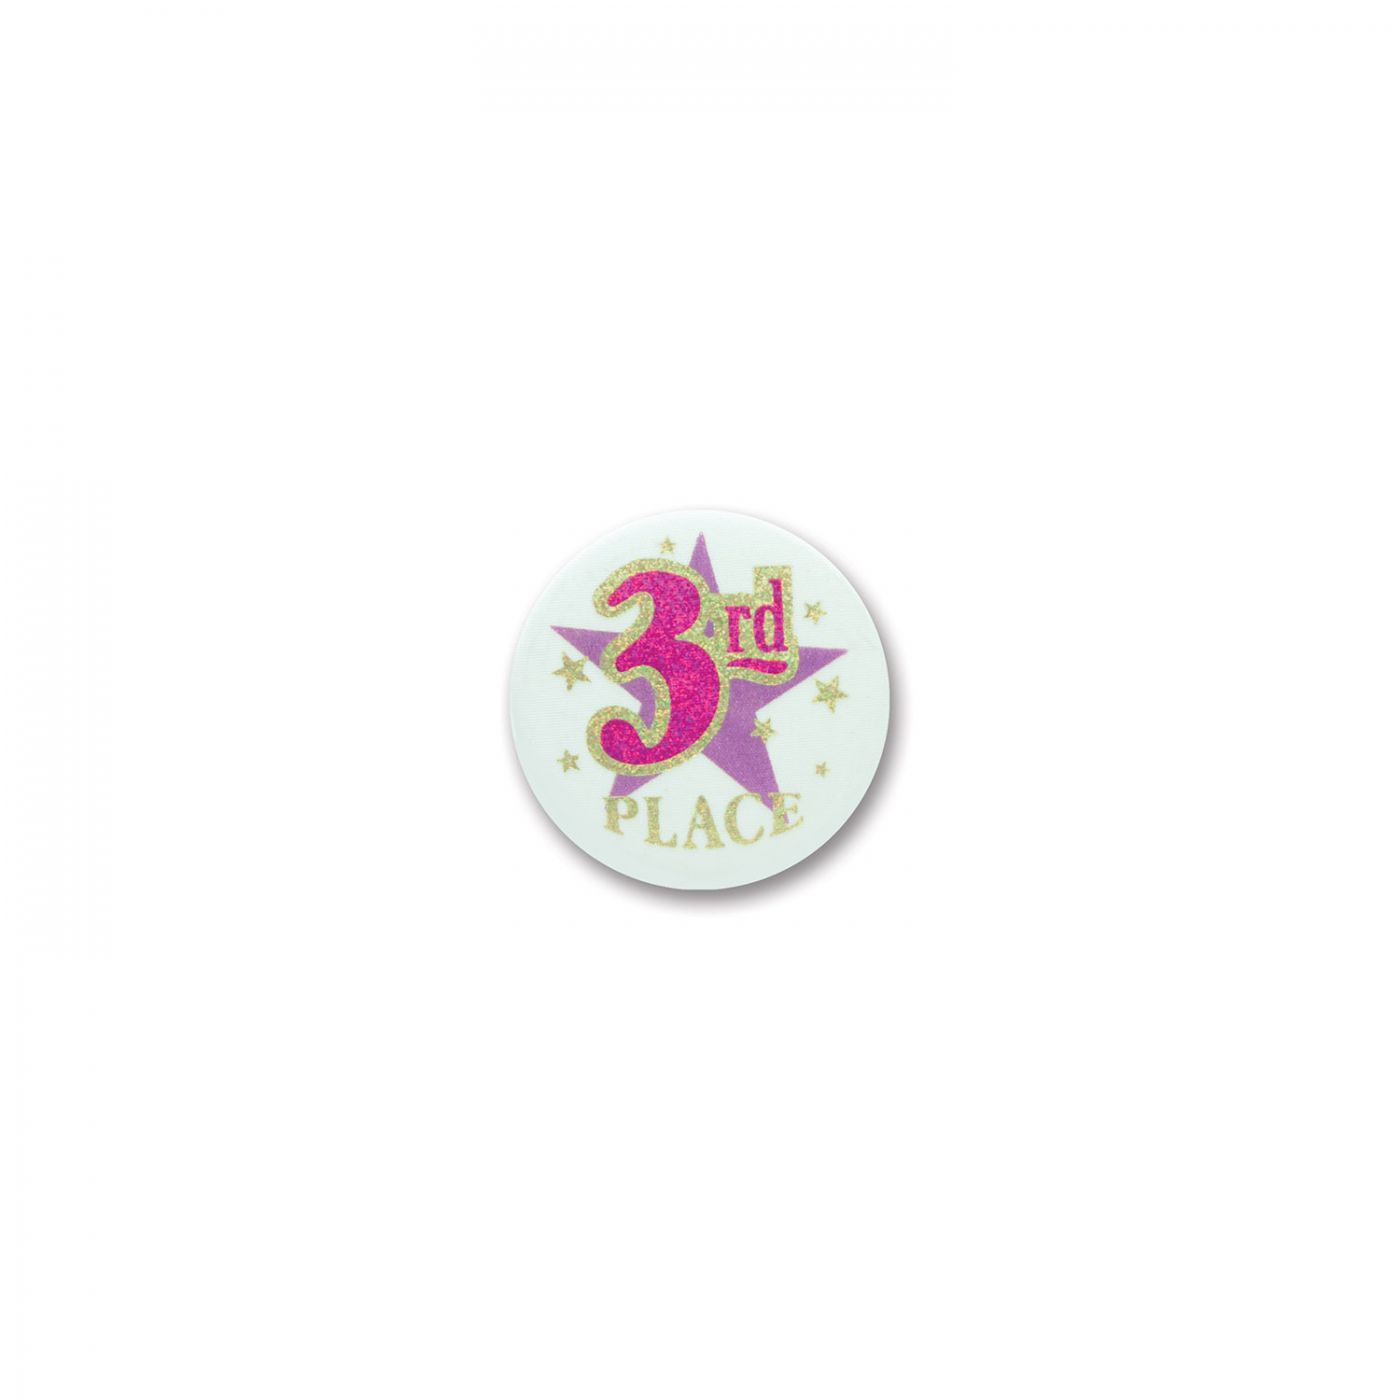 Image of 3rd Place Satin Button (6)